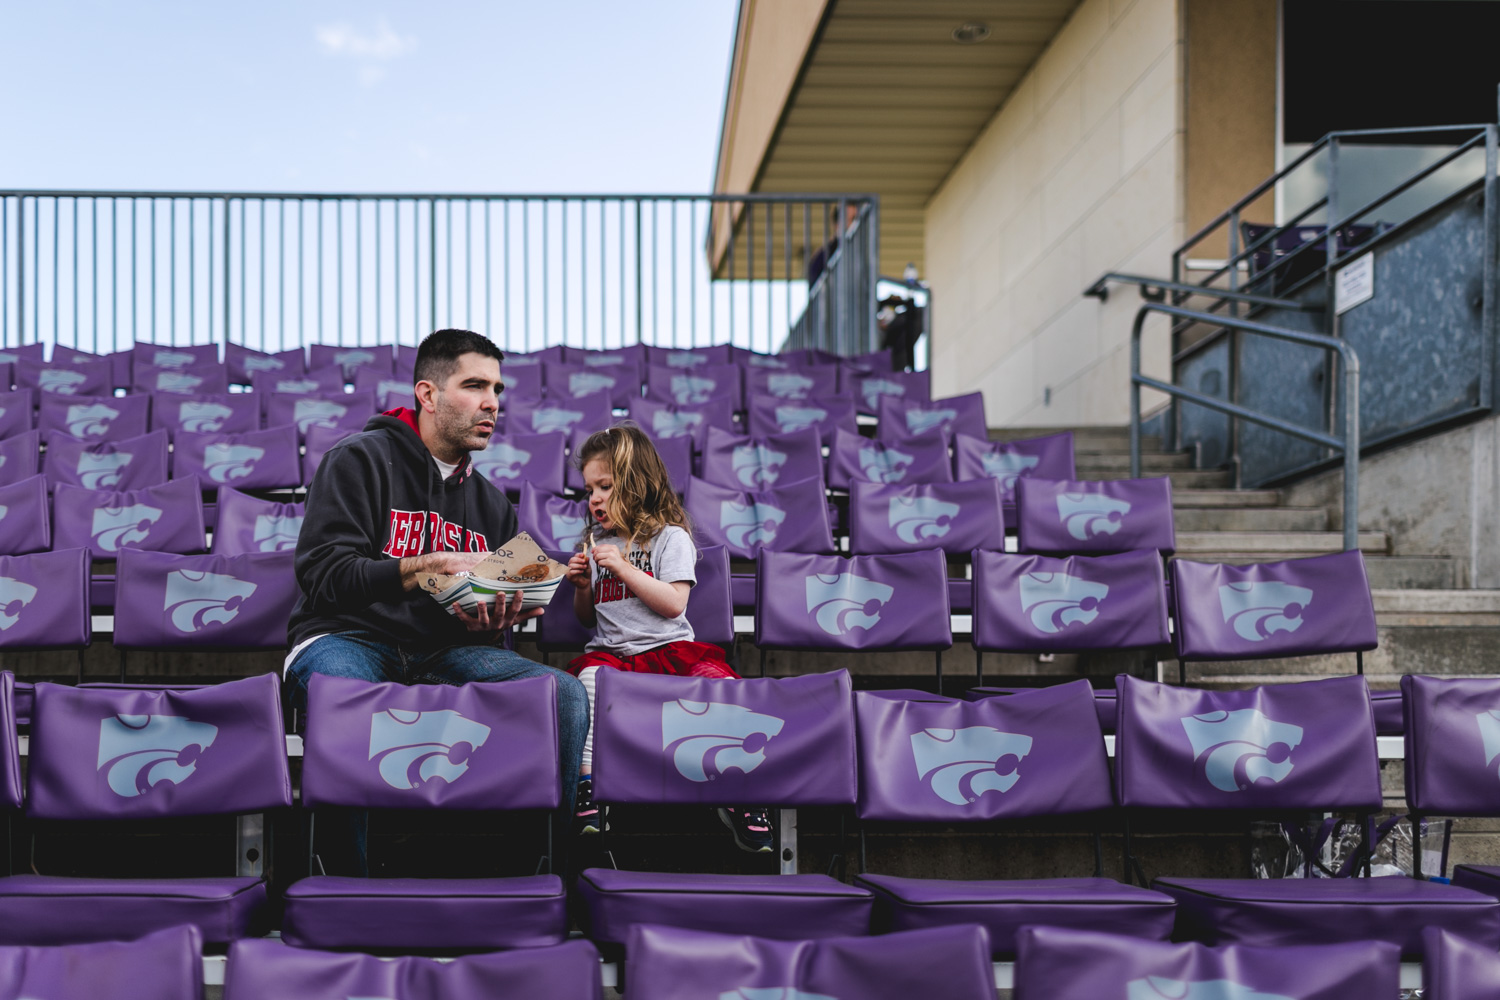 Captured by Best Documentary Family Photographer, Renee McDaniel of Renee McDaniel Photography in Manhattan Kansas. Photographed at Tointon Family Stadium, Kansas State University, Manhattan Kansas.